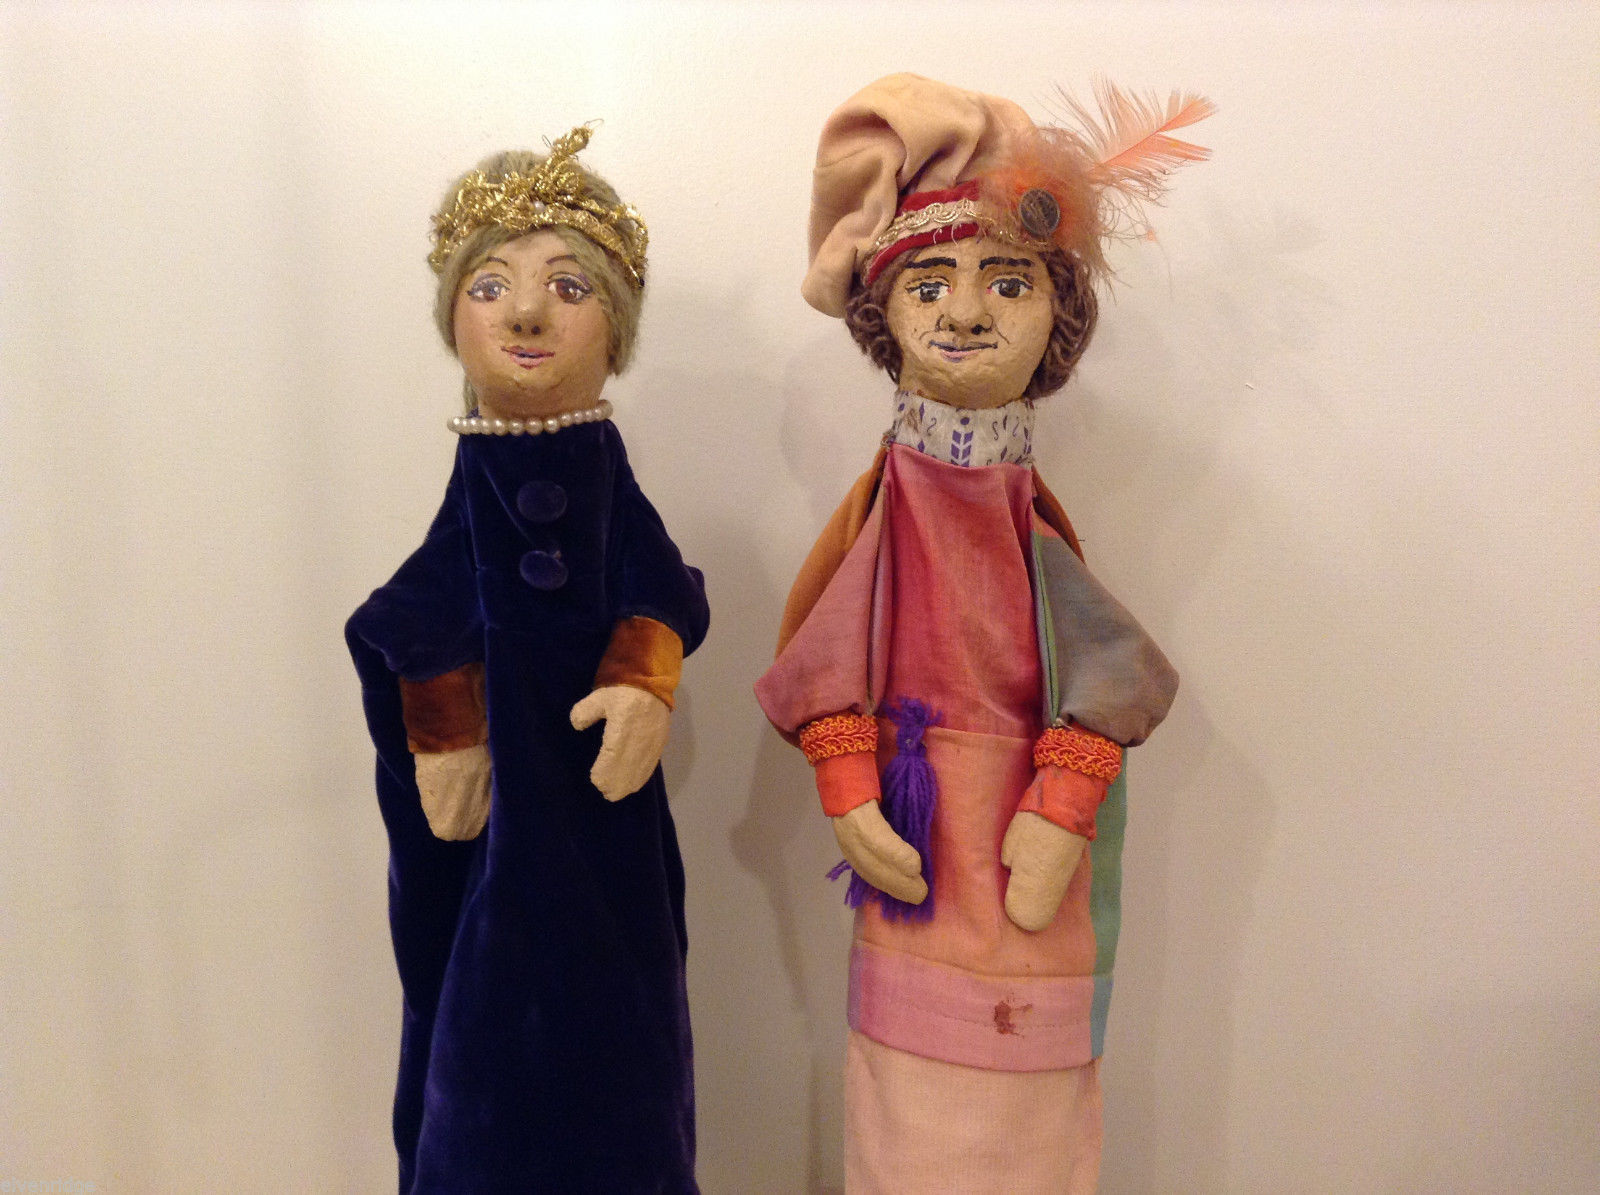 Vintage Handmade One of a Kind Clay Hand Puppets Set of 2 - Lady and Gentleman